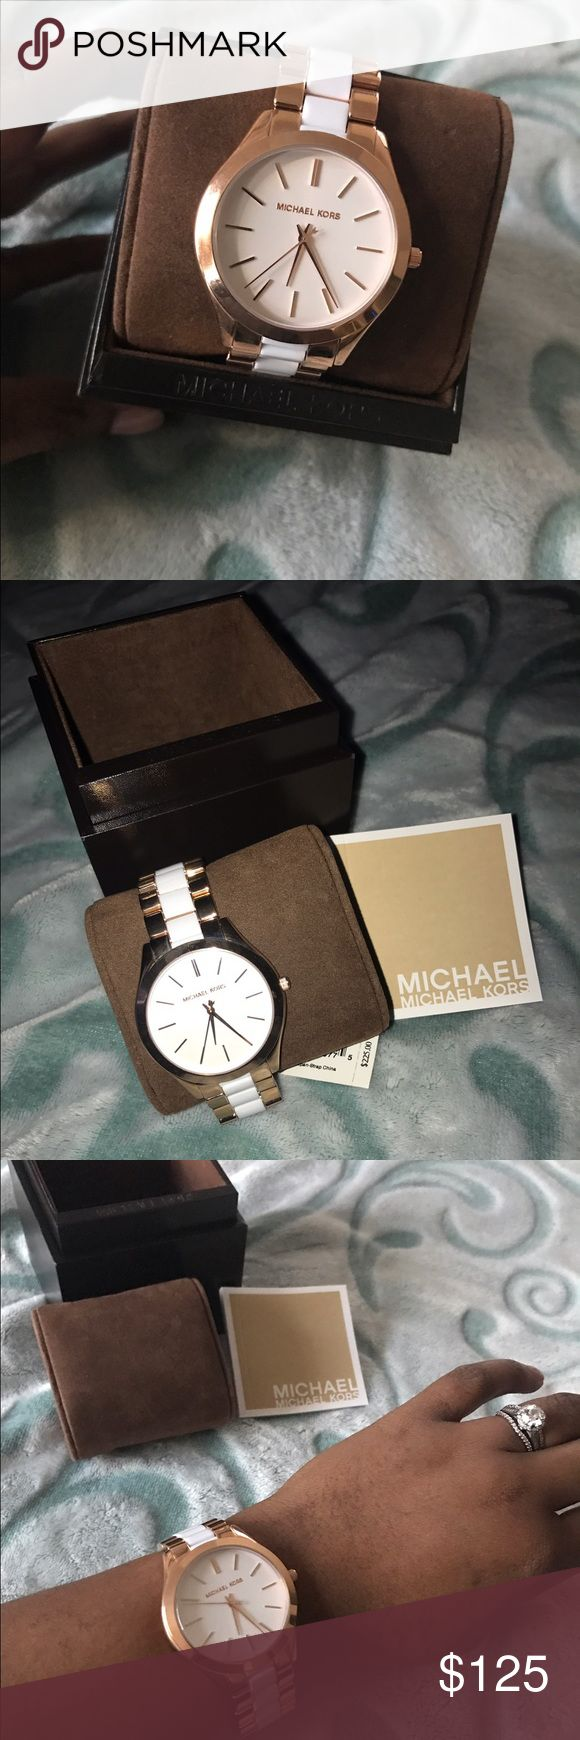 BRAND NEW Michael Kors Watch Brand New Rose Gold & White Michael Kors Watch Michael Kors Accessories Watches